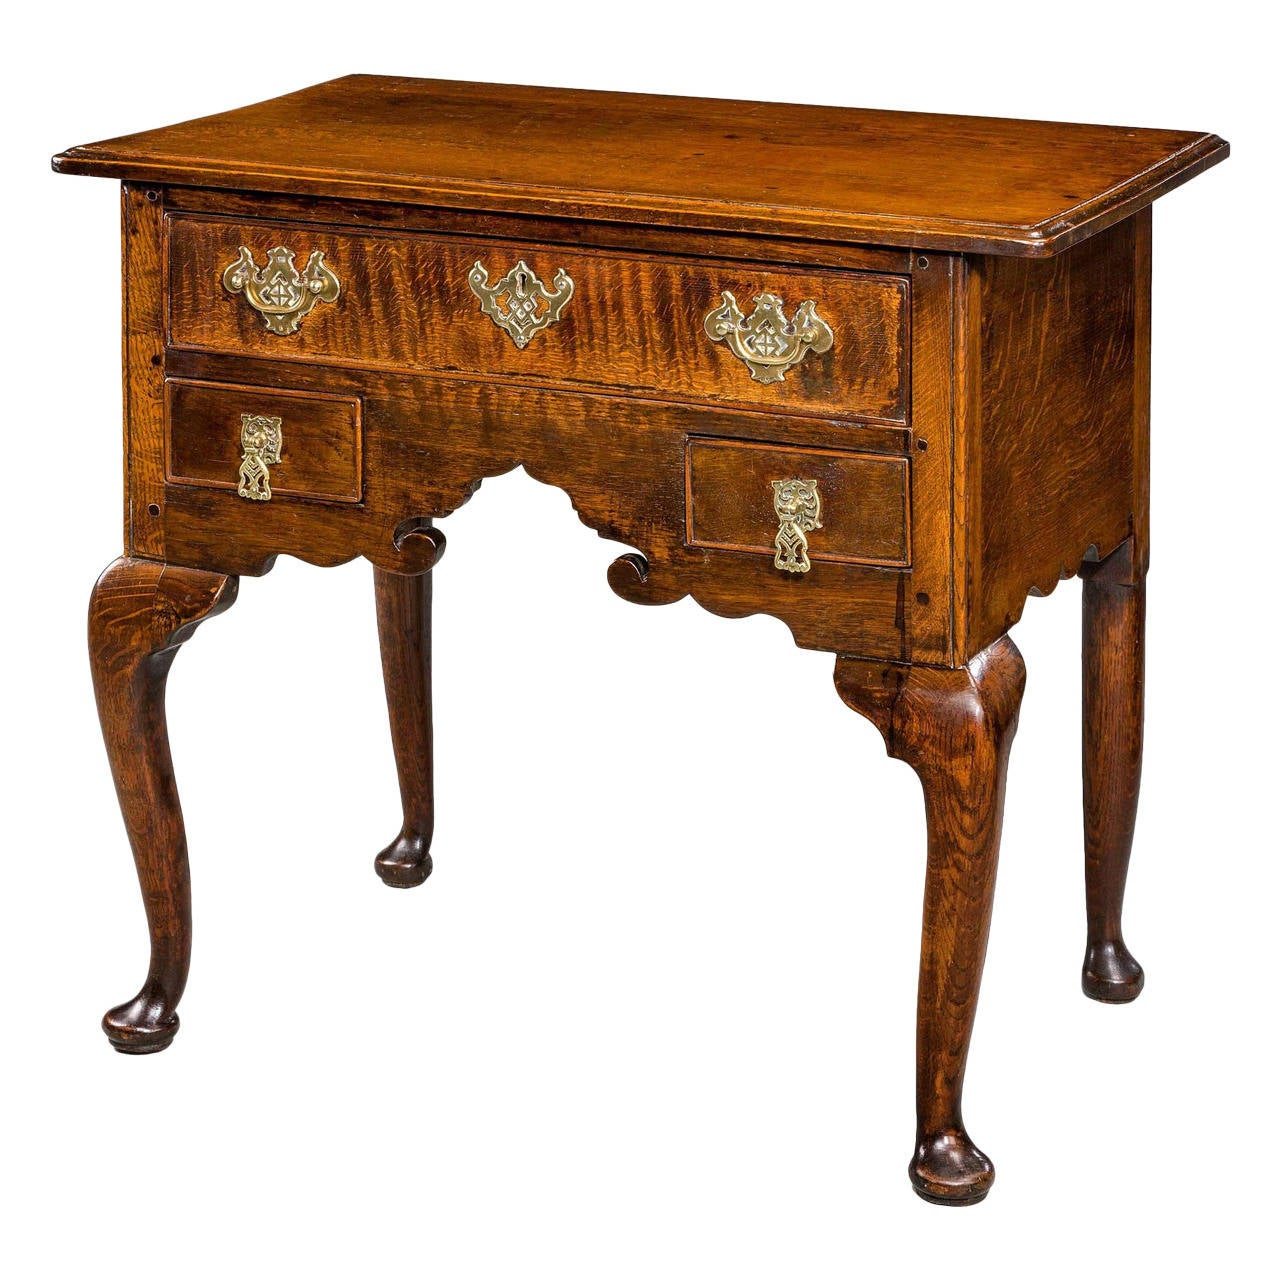 George II Period Oak Lowboy